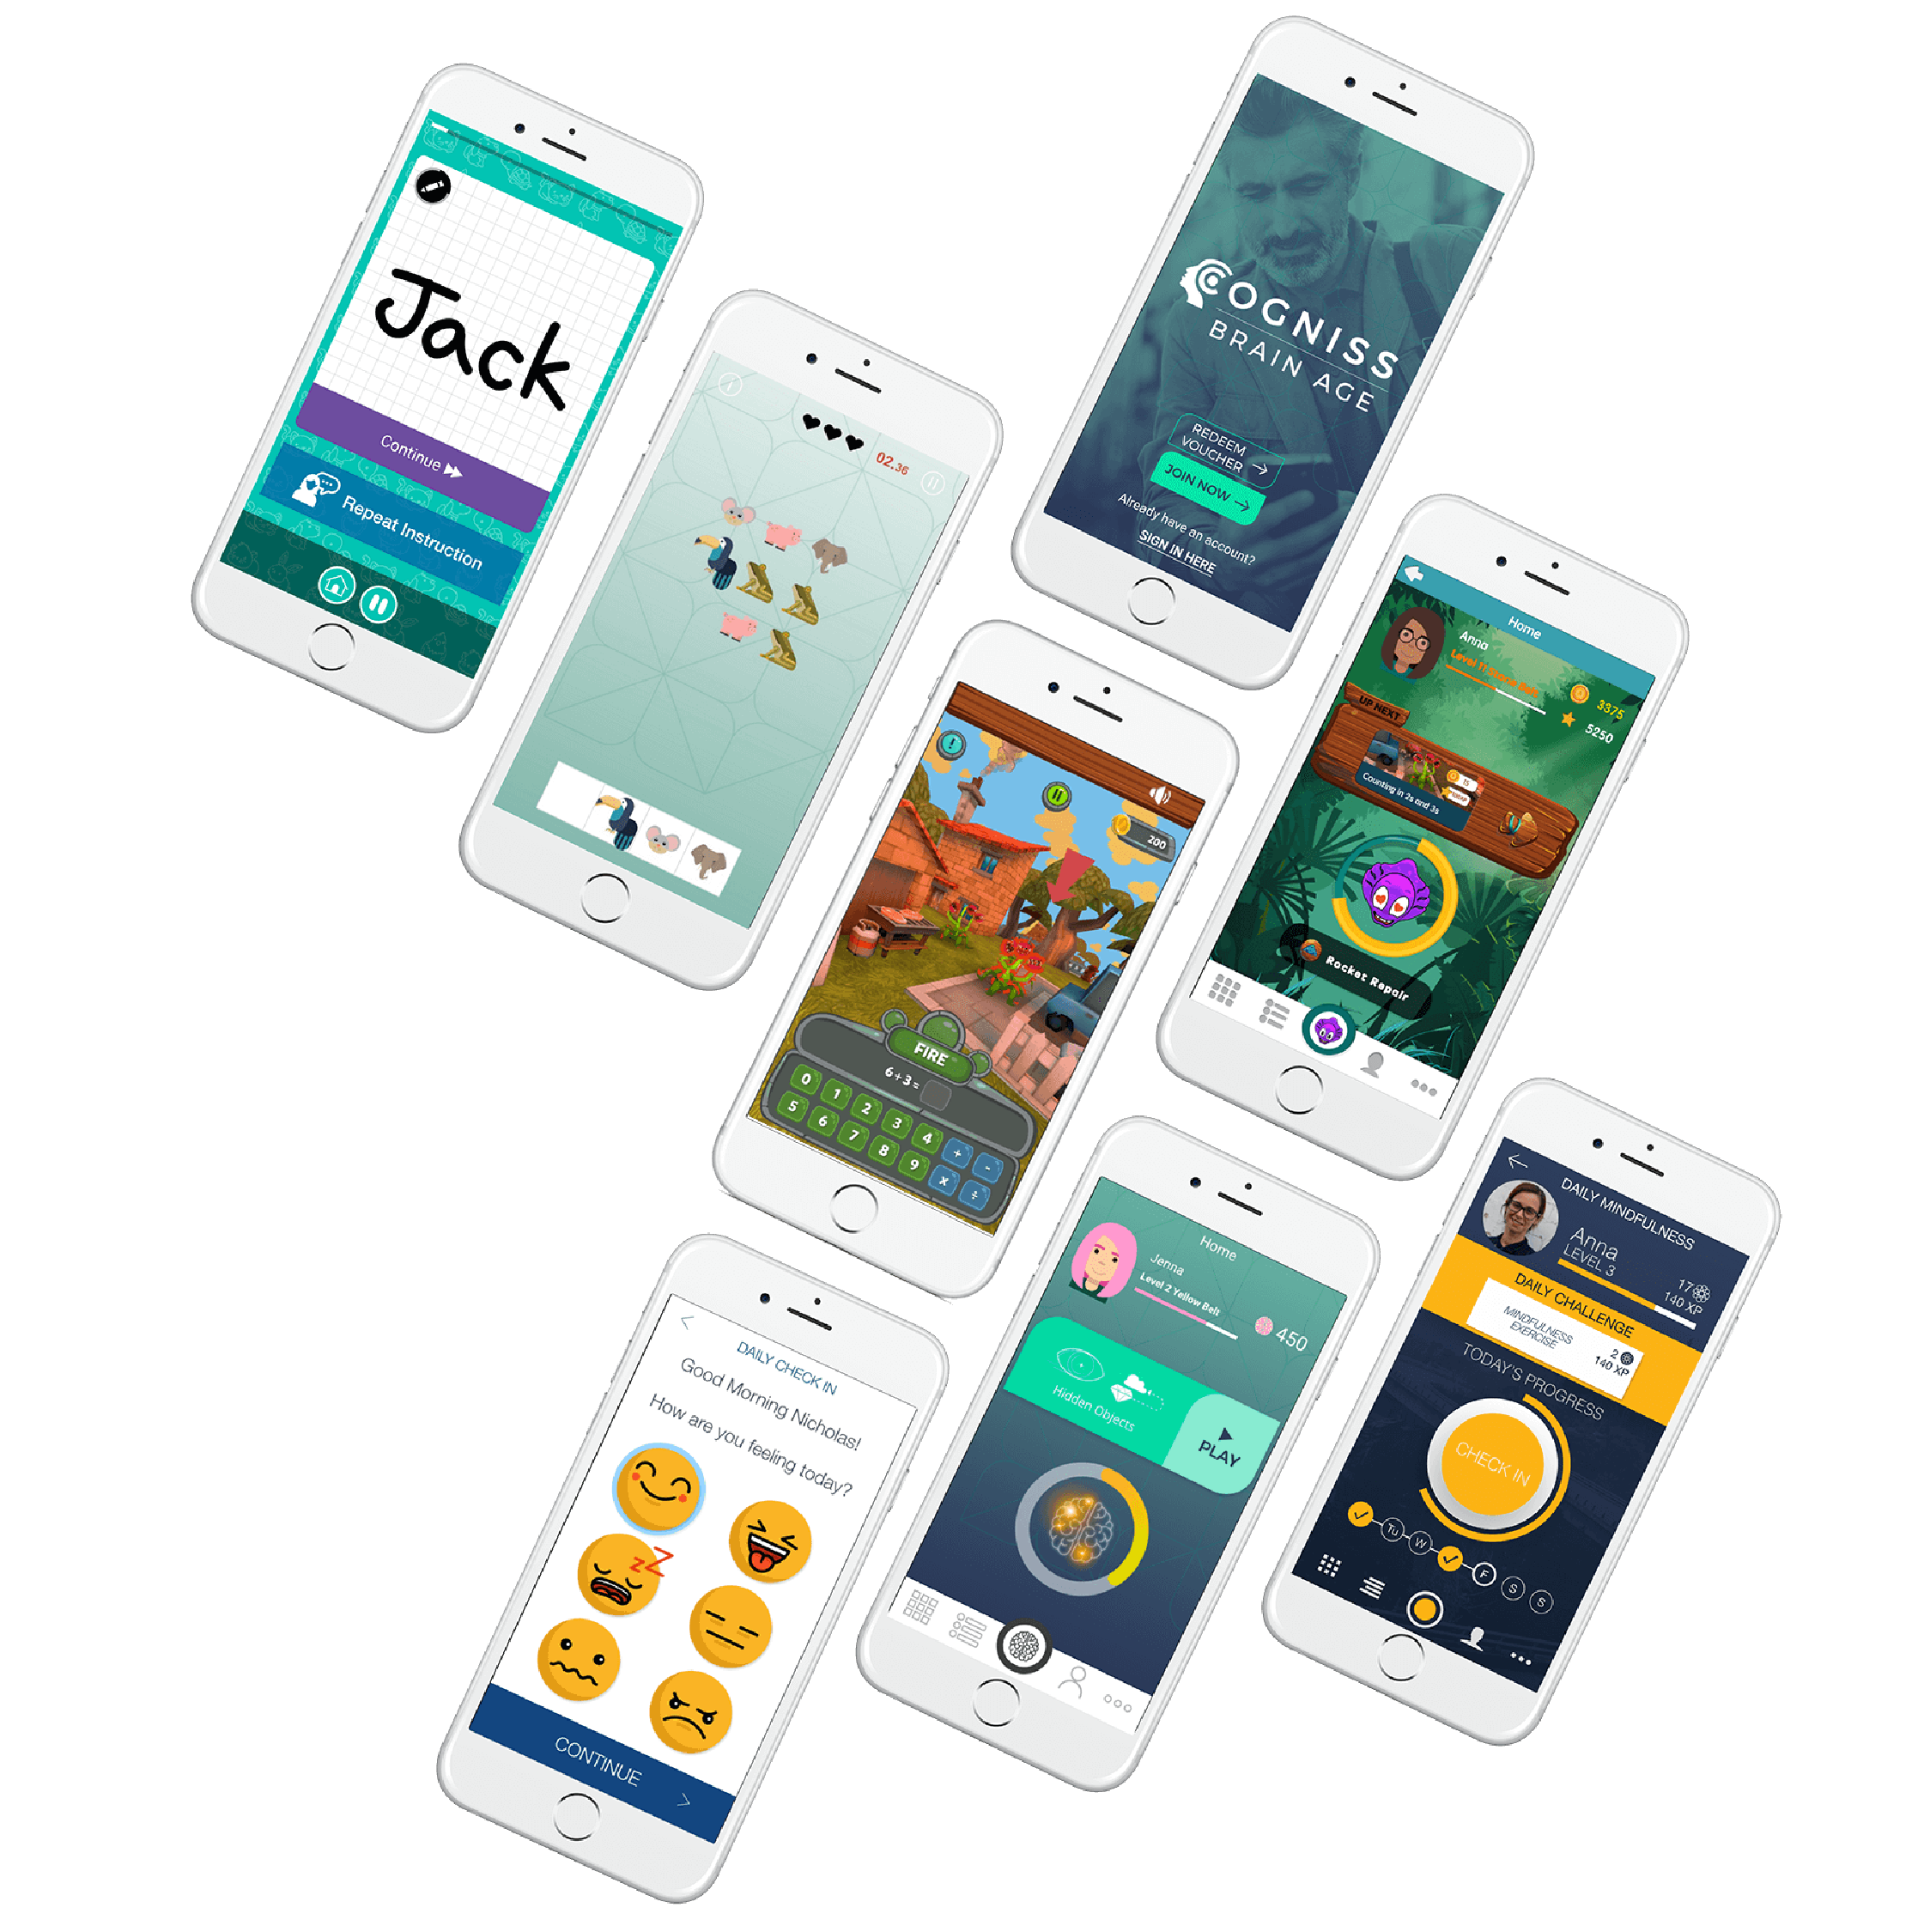 Cogniss apps